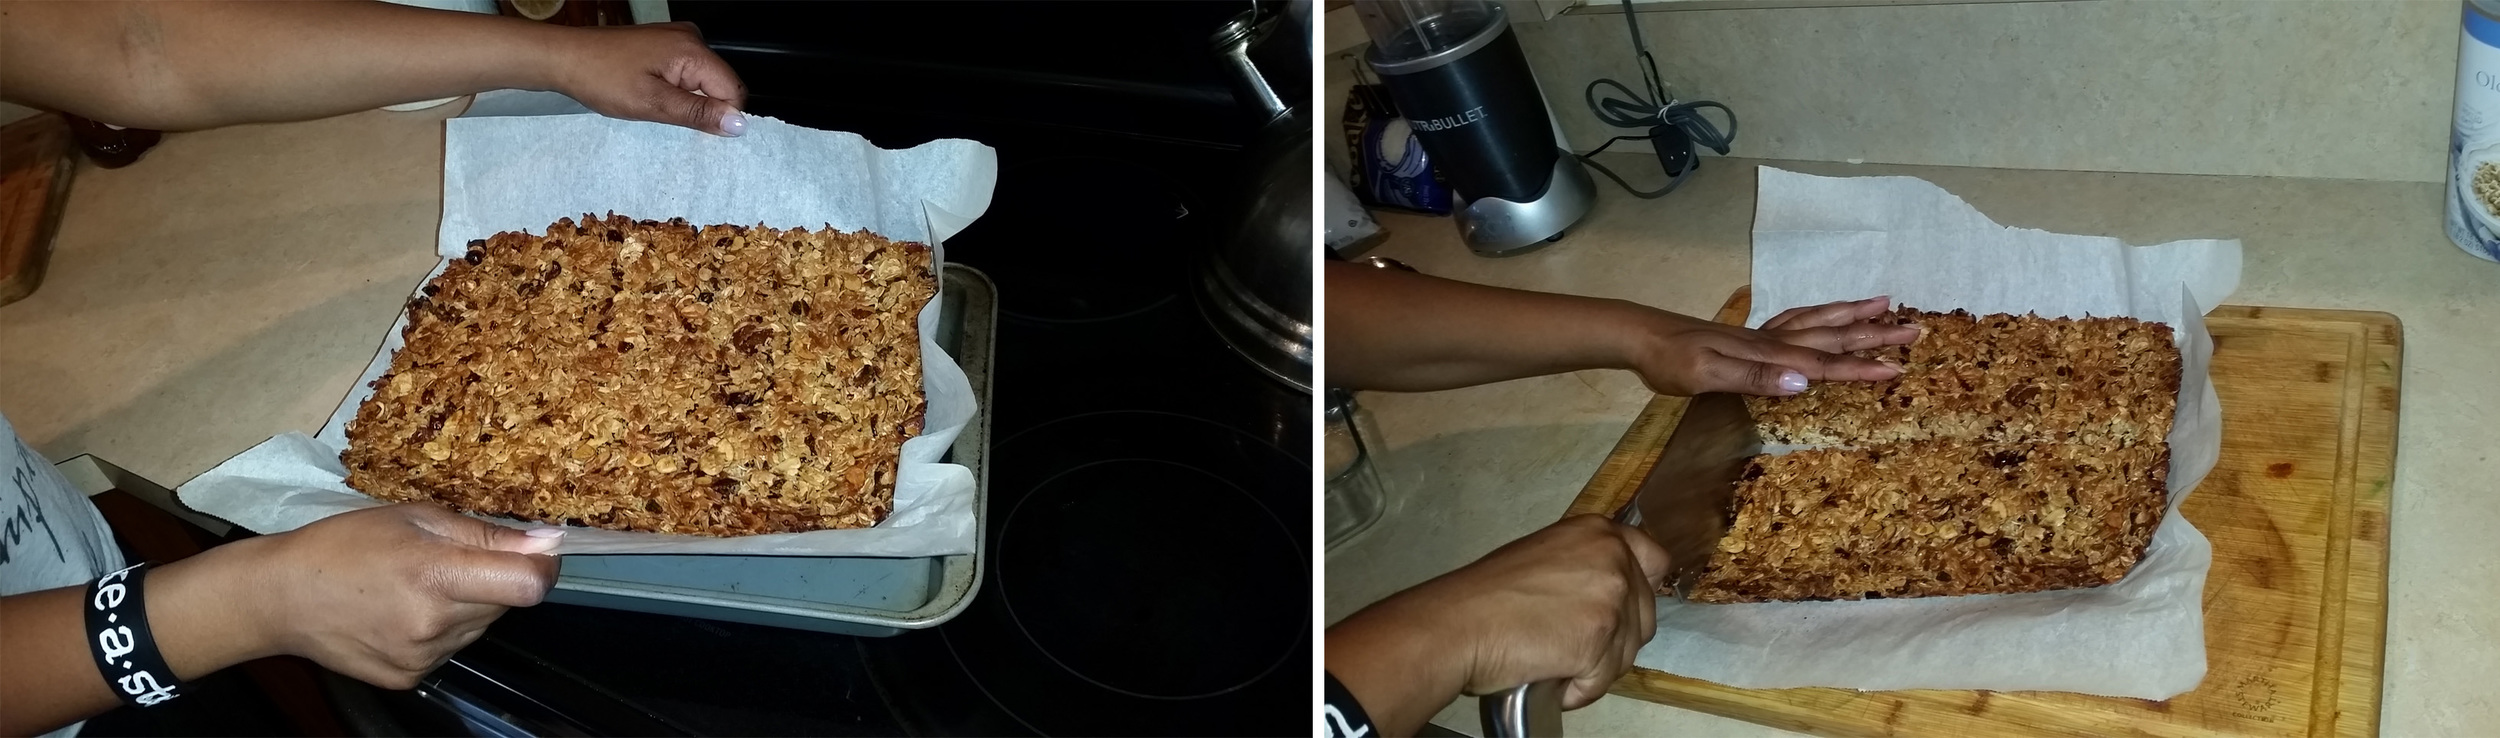 11. Remove from oven and let cool for at least an hour (The hardest part in my opinion). When that timer goes off, lift the parchment straight up and place your granola on a sturdy cutting board. With a nice sharp knife cut into bars or smaller squares for mini snacks.